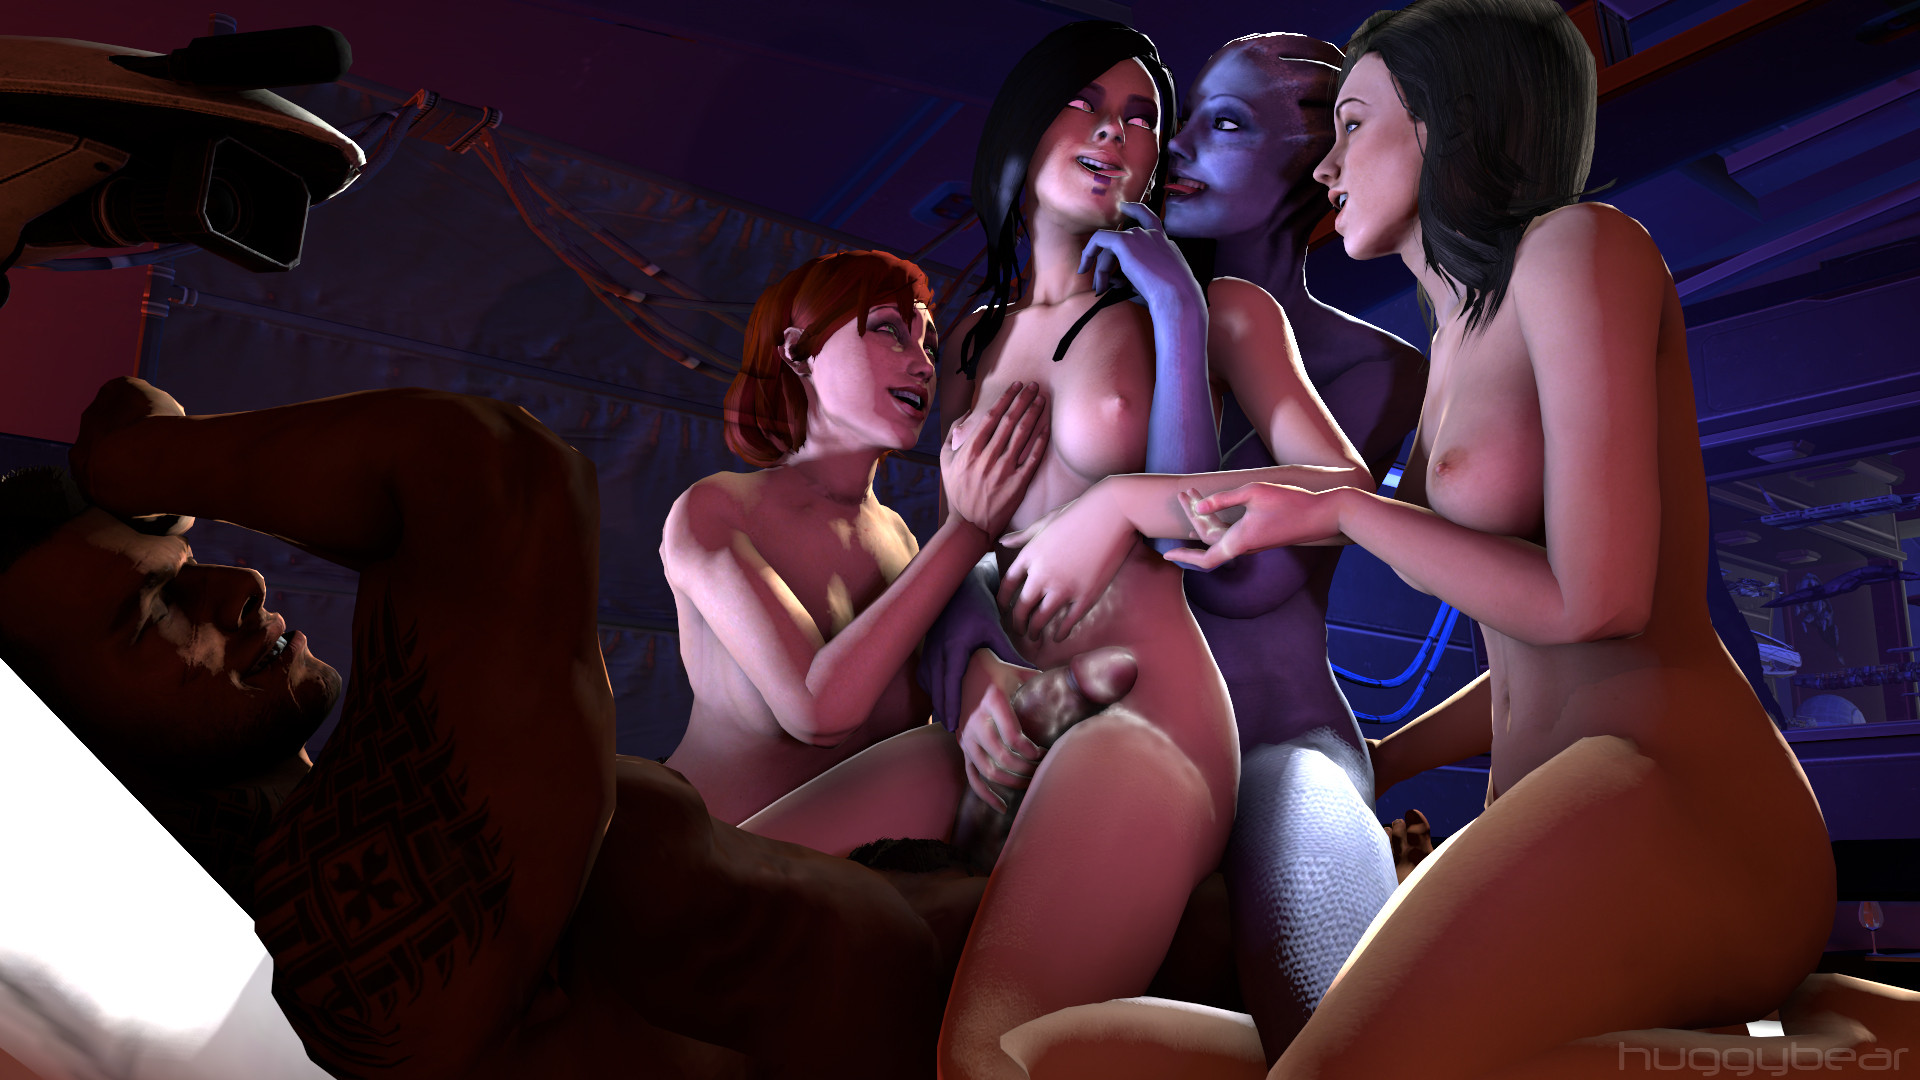 Mass effect pornpics pron movie